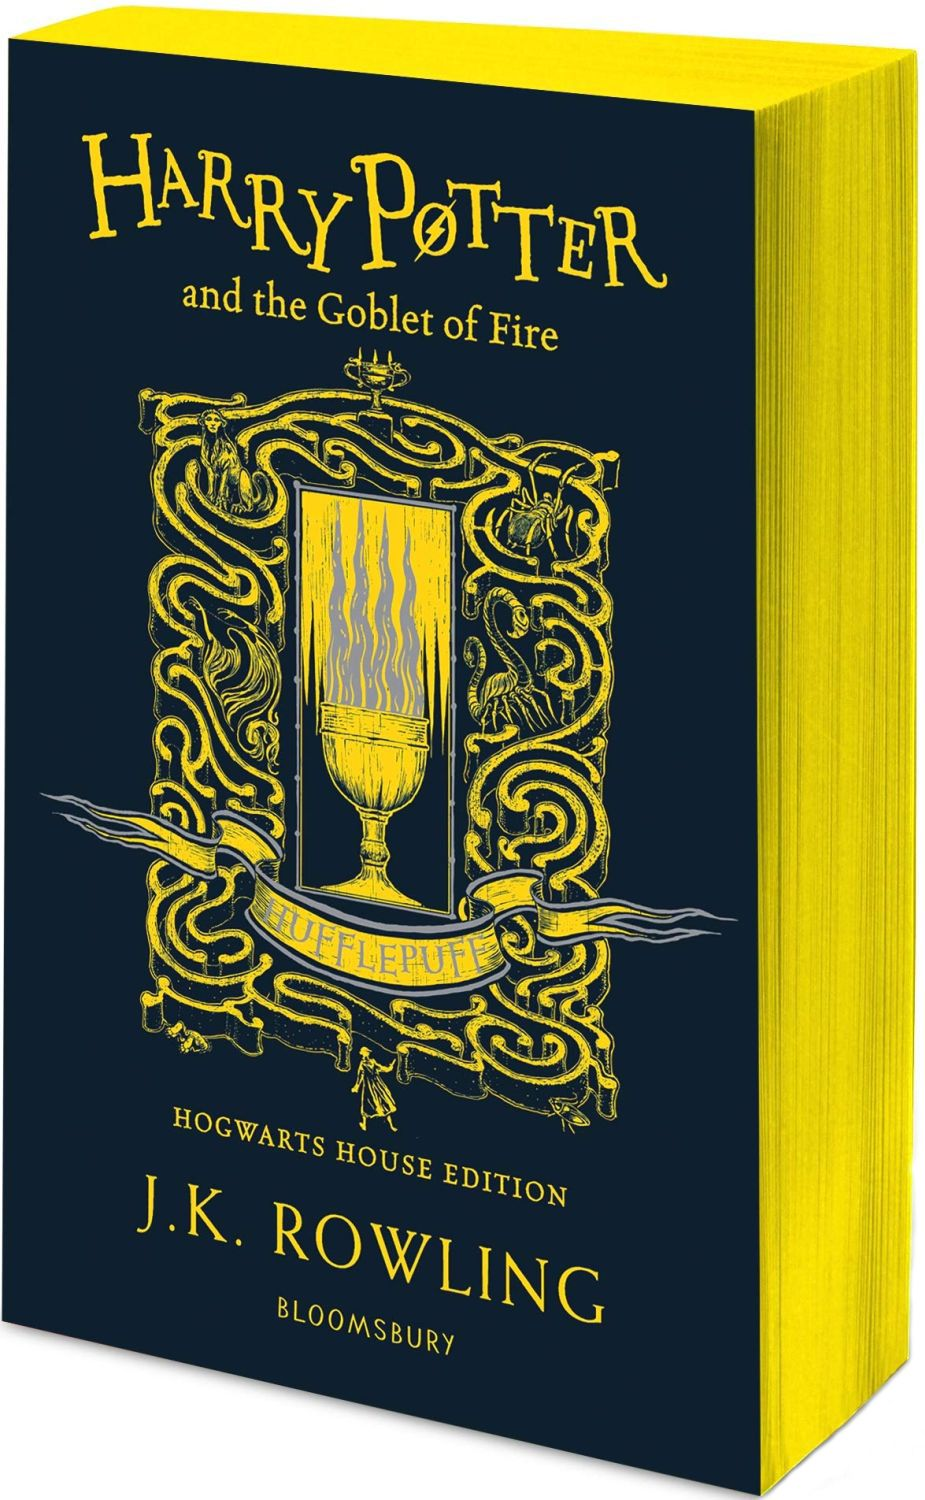 Harry Potter and the Goblet of Fire – Hufflepuff Edition - 1